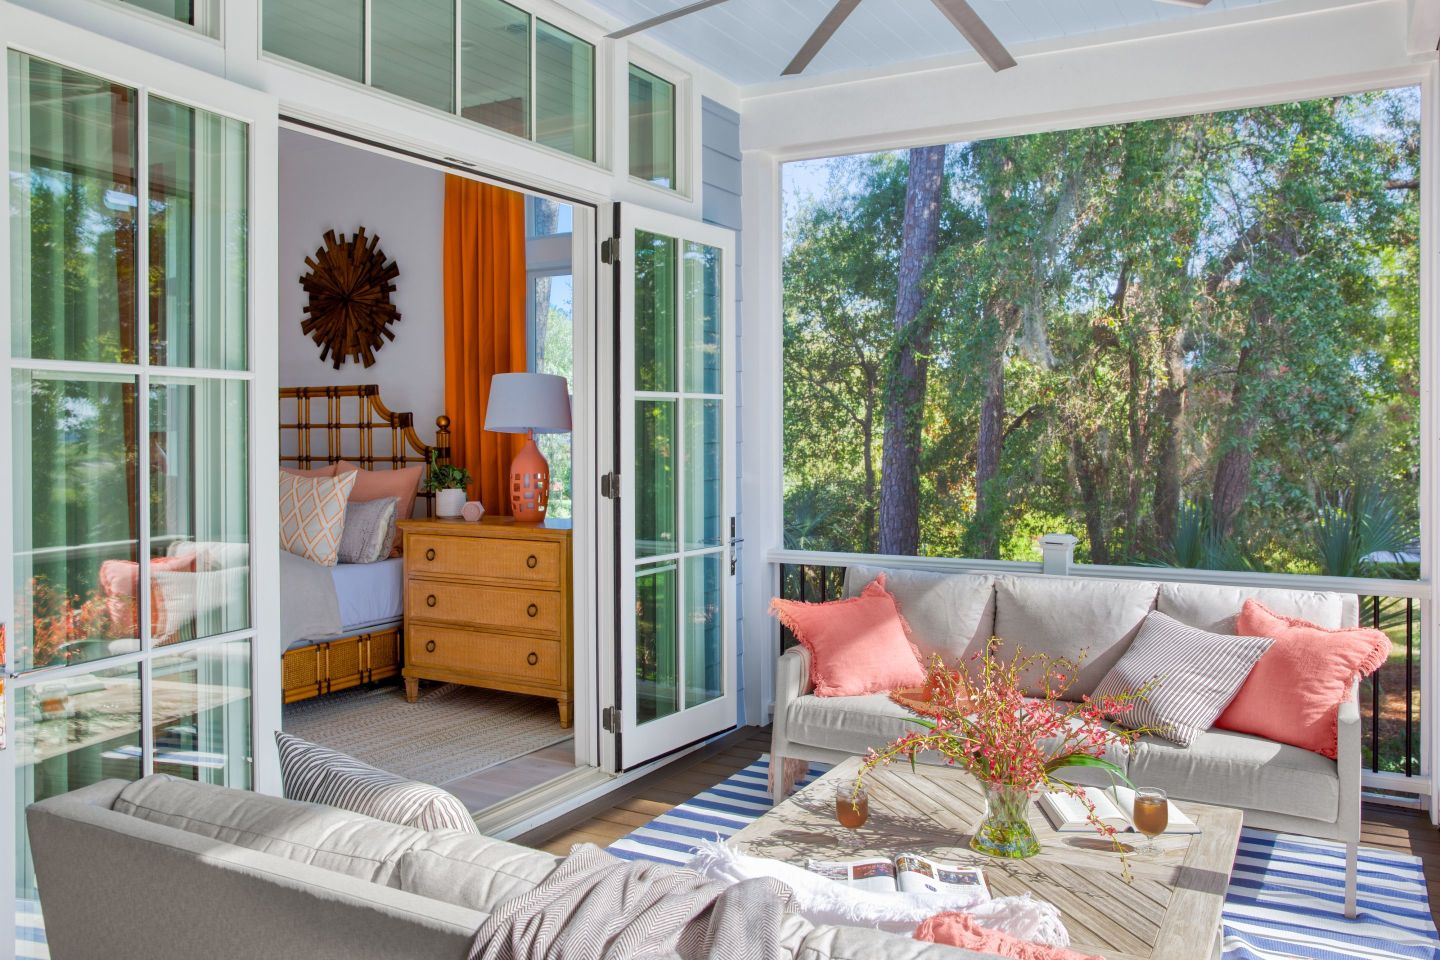 HGTV-Dream-Home-2020-Master-Bedroom-2-1440x960 Lowcountry Vacation Home Style in Hilton Head with HGTV Dream Home 2020